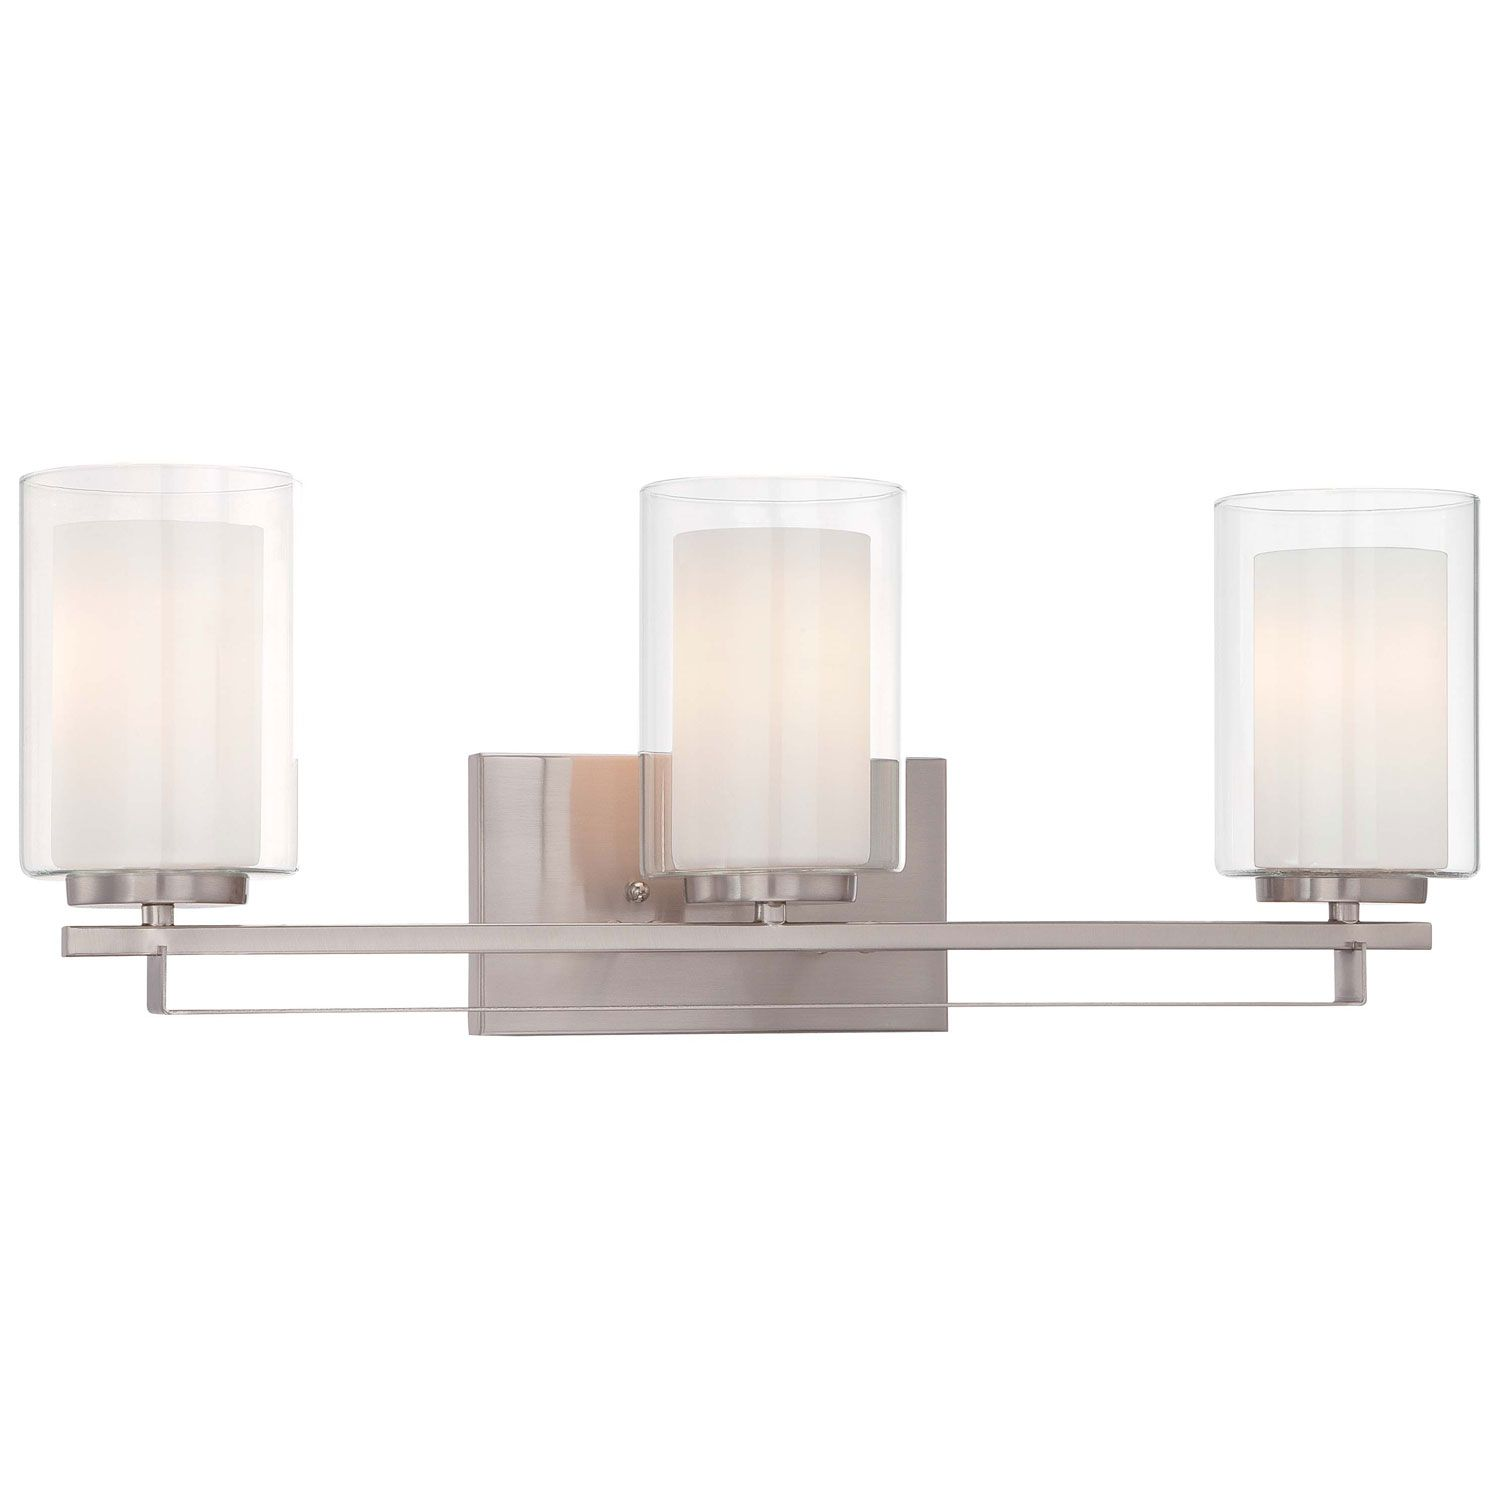 MinkaLavery Parsons Studio Brushed Nickel Inch ThreeLight - Brushed nickel bathroom light fixtures sale